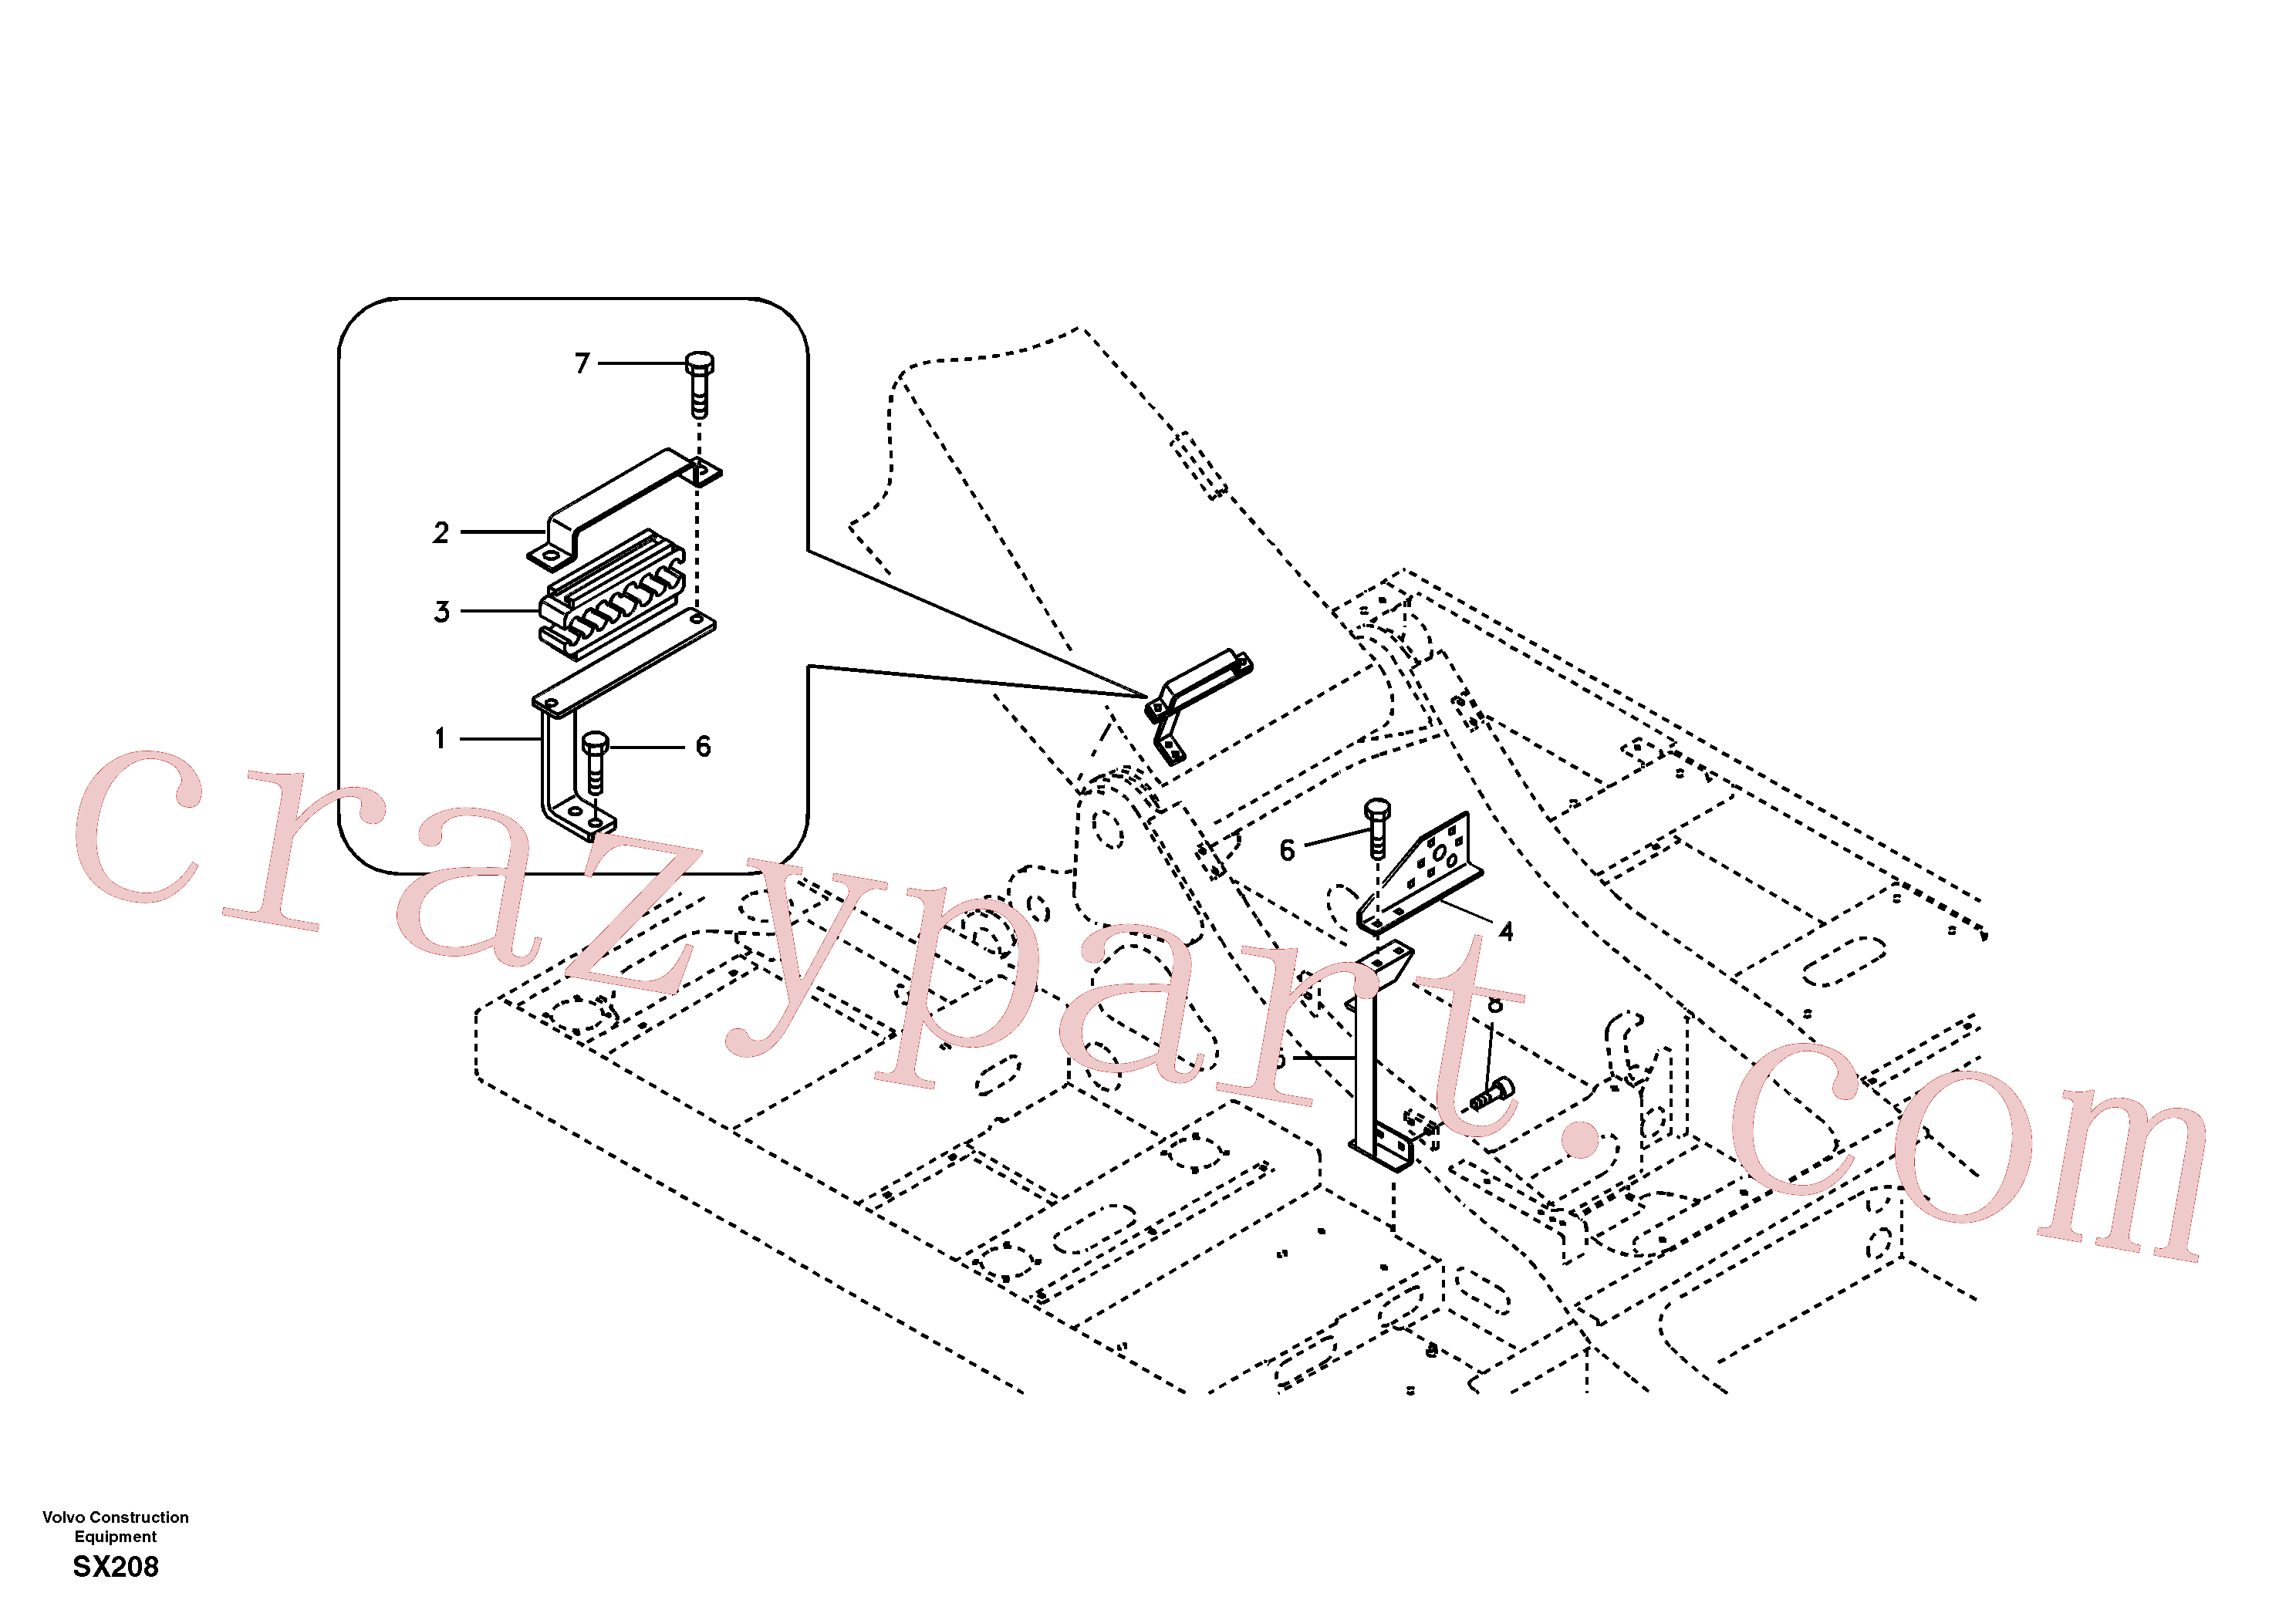 SA1174-58010 for Volvo Hydraulic lines bracket-quickfit, rotator, hose repture(SX208 assembly)